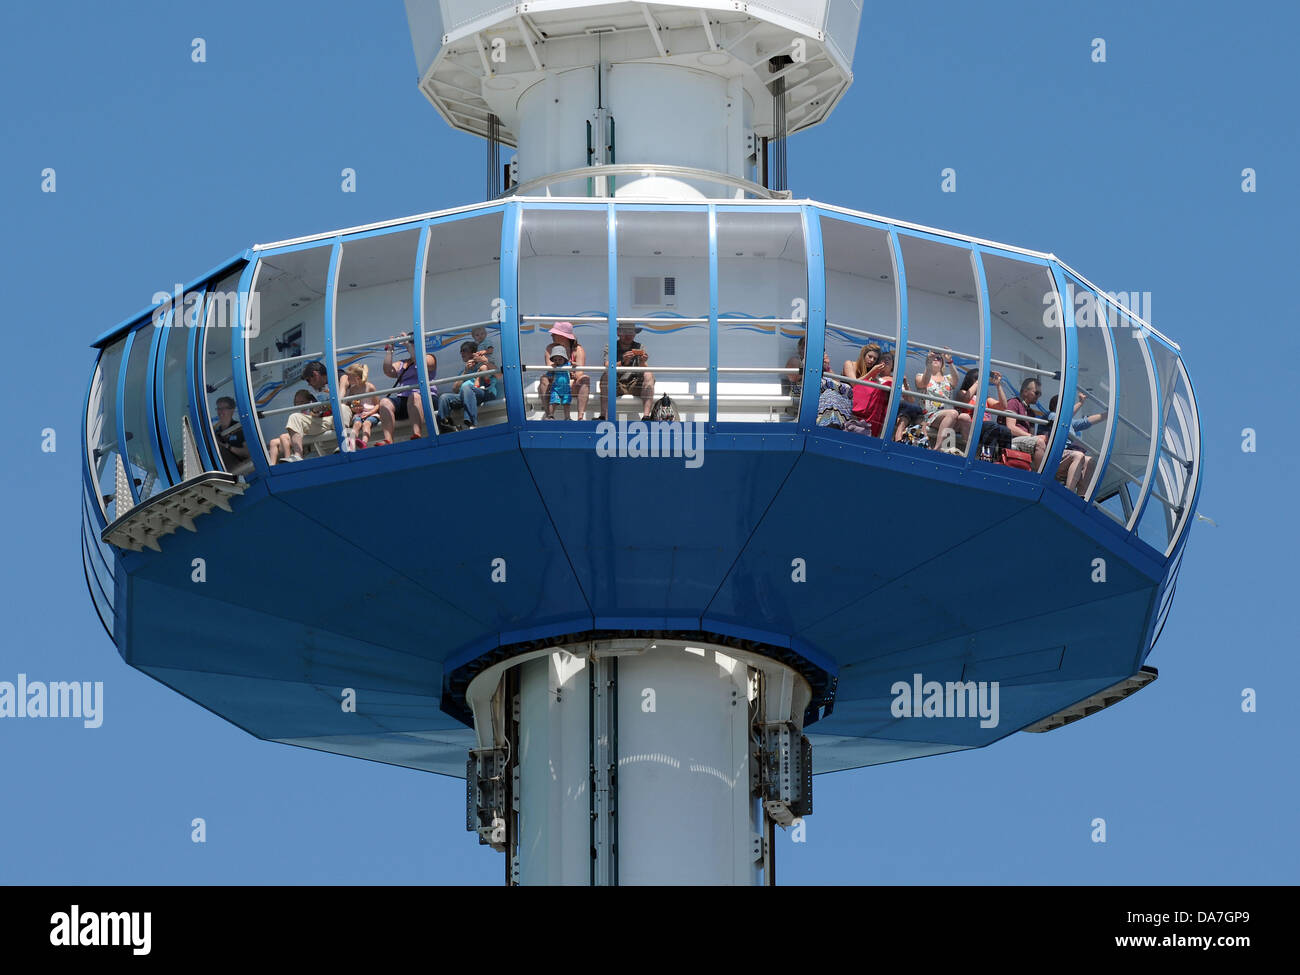 Observation tower, Weymouth Sealife viewing tower, Weymouth, Dorset, Britain, UK - Stock Image